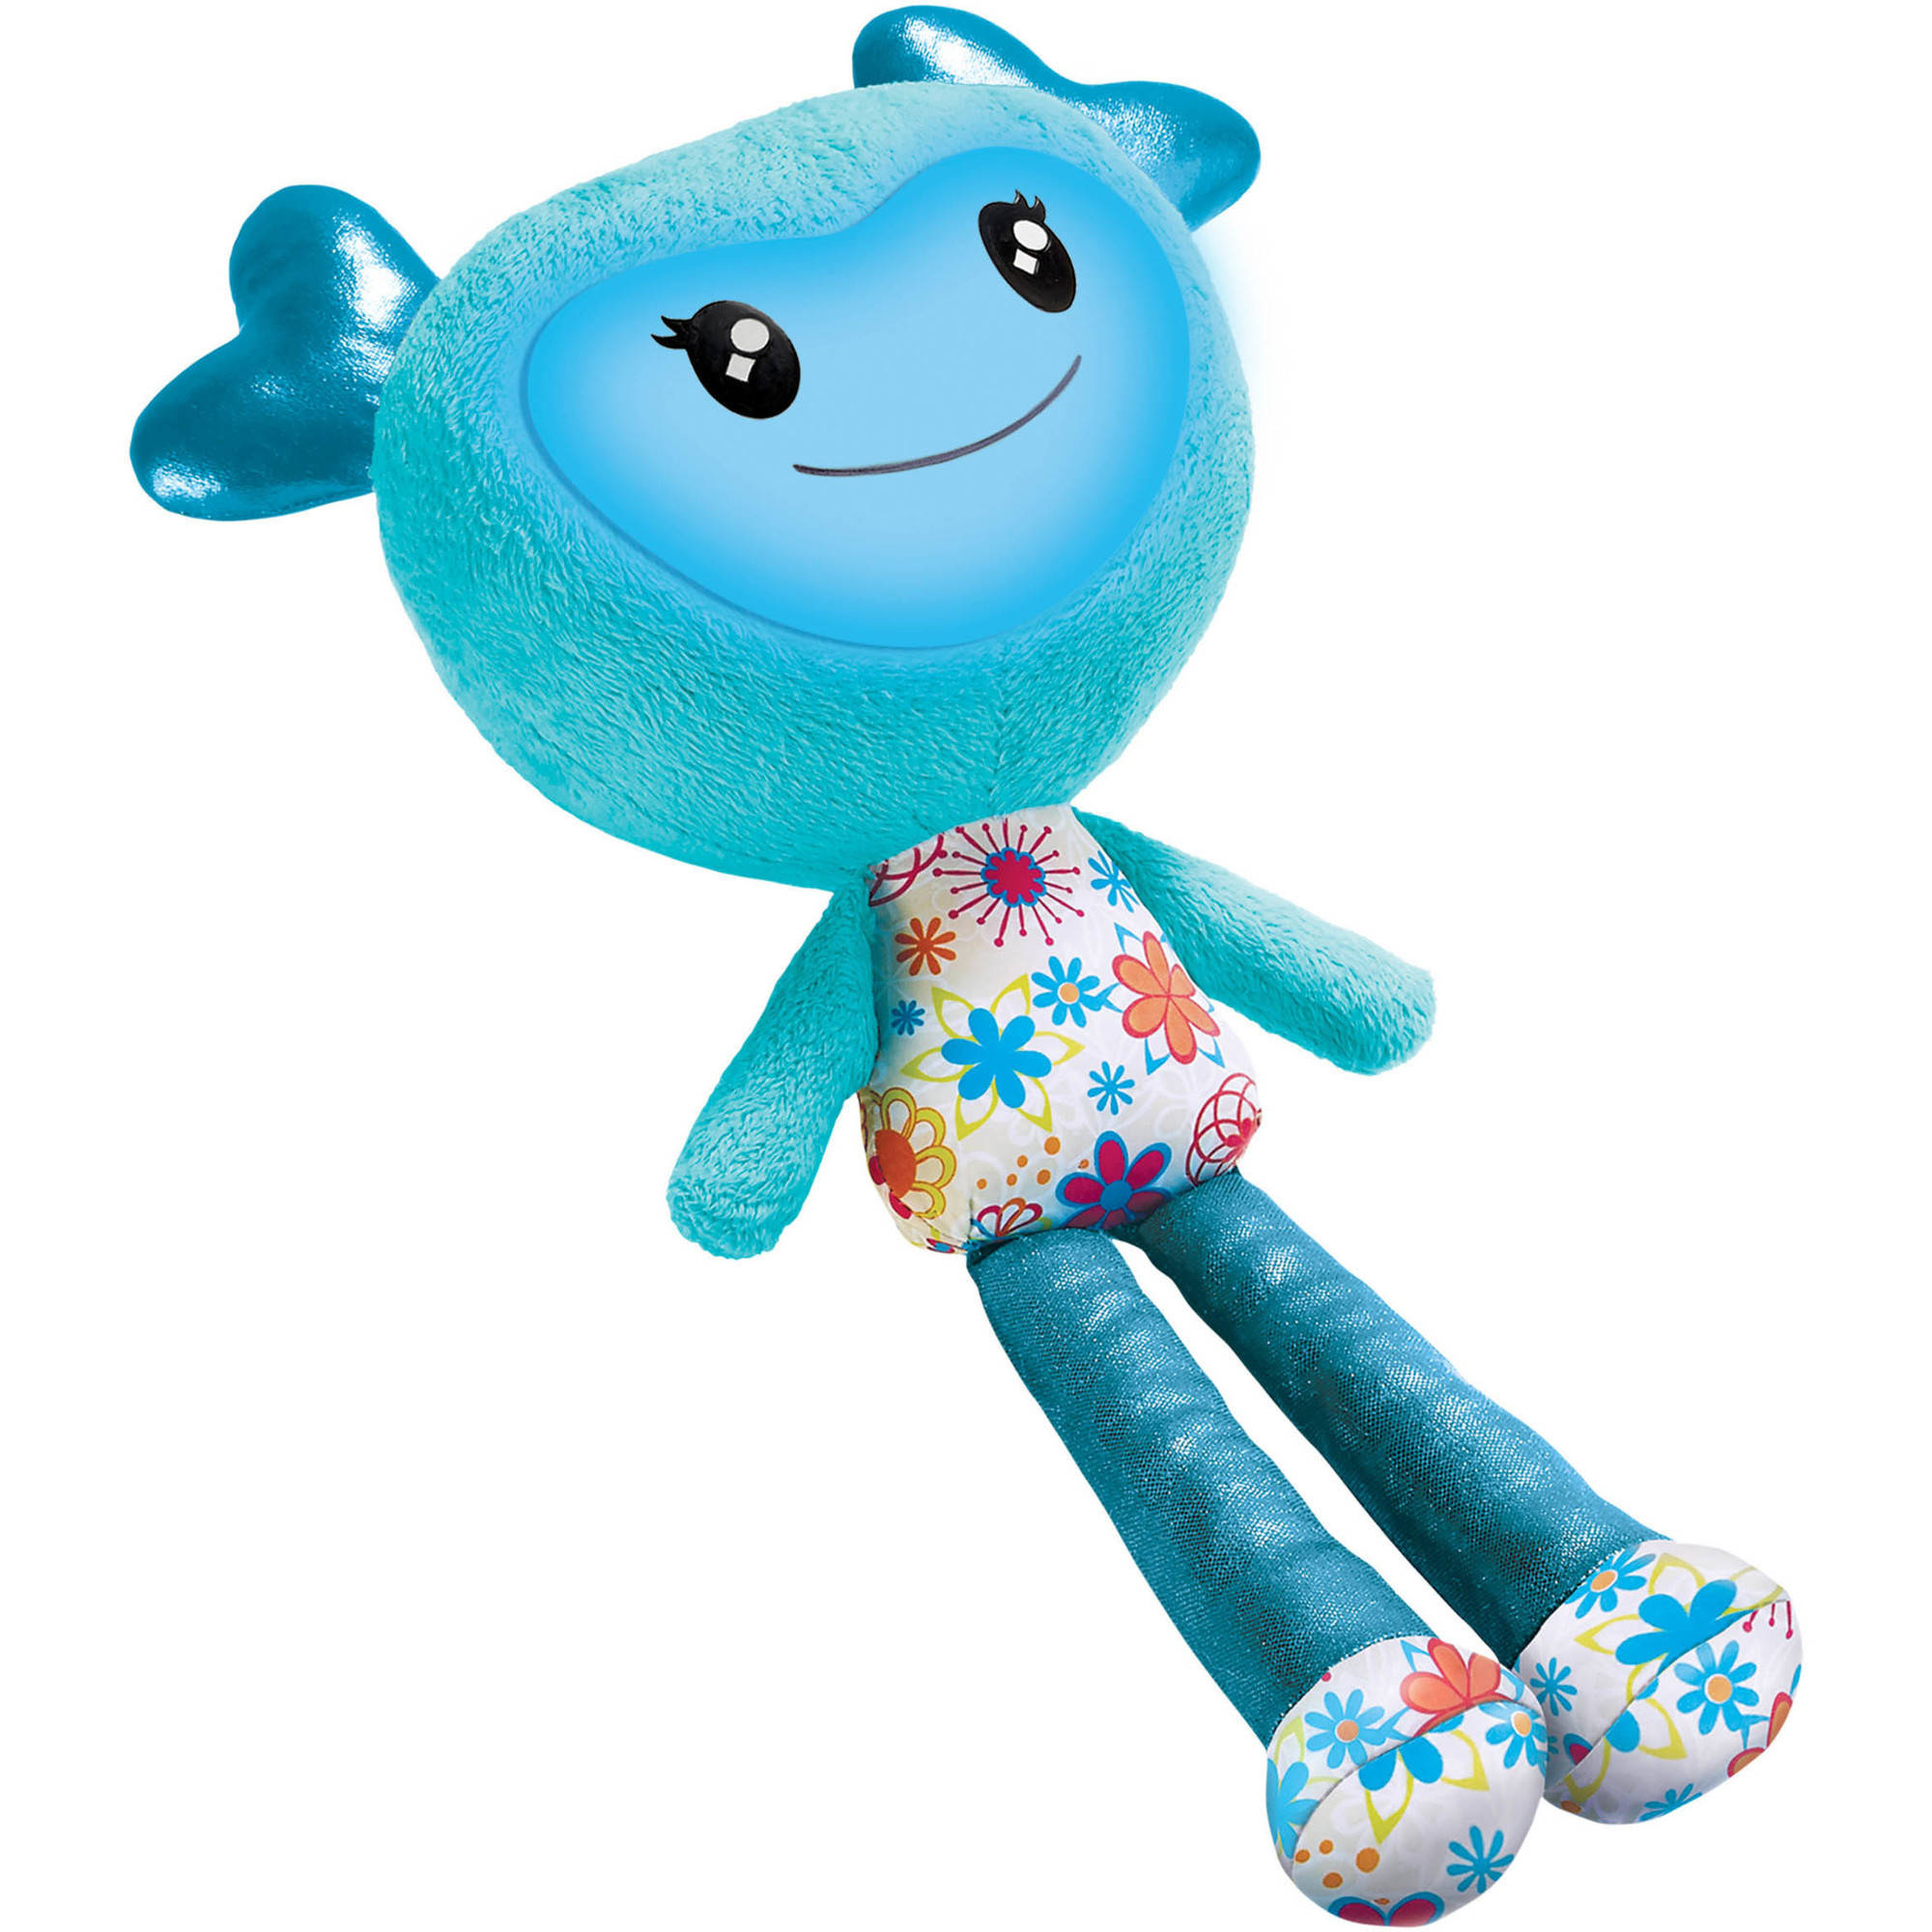 Brightlings Interactive Plush, Teal, 15""